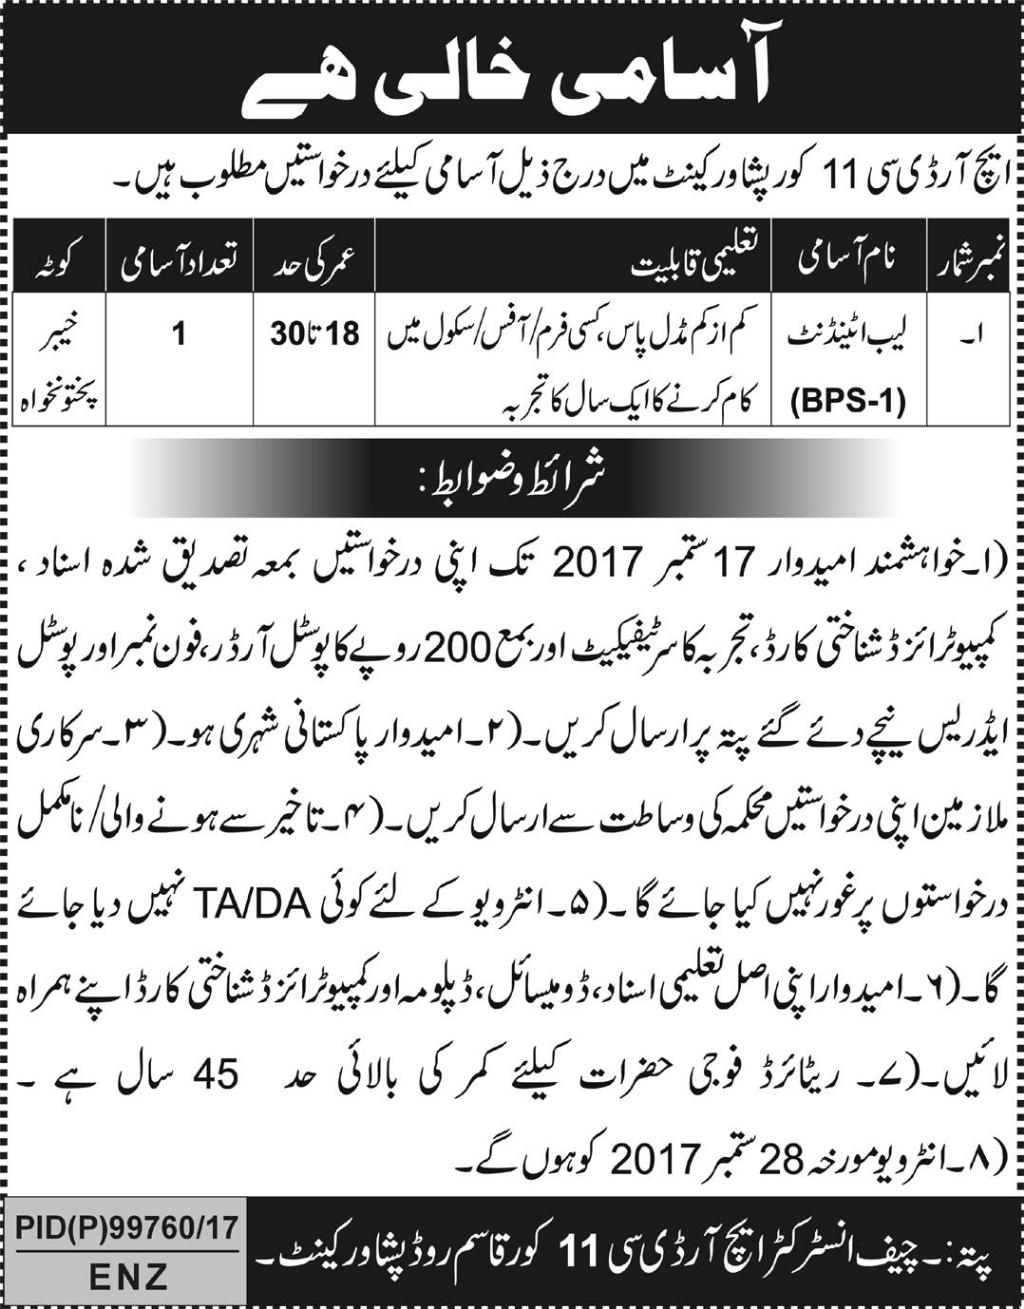 HRDC 11 Peshawar Cantt jobs aug 2017